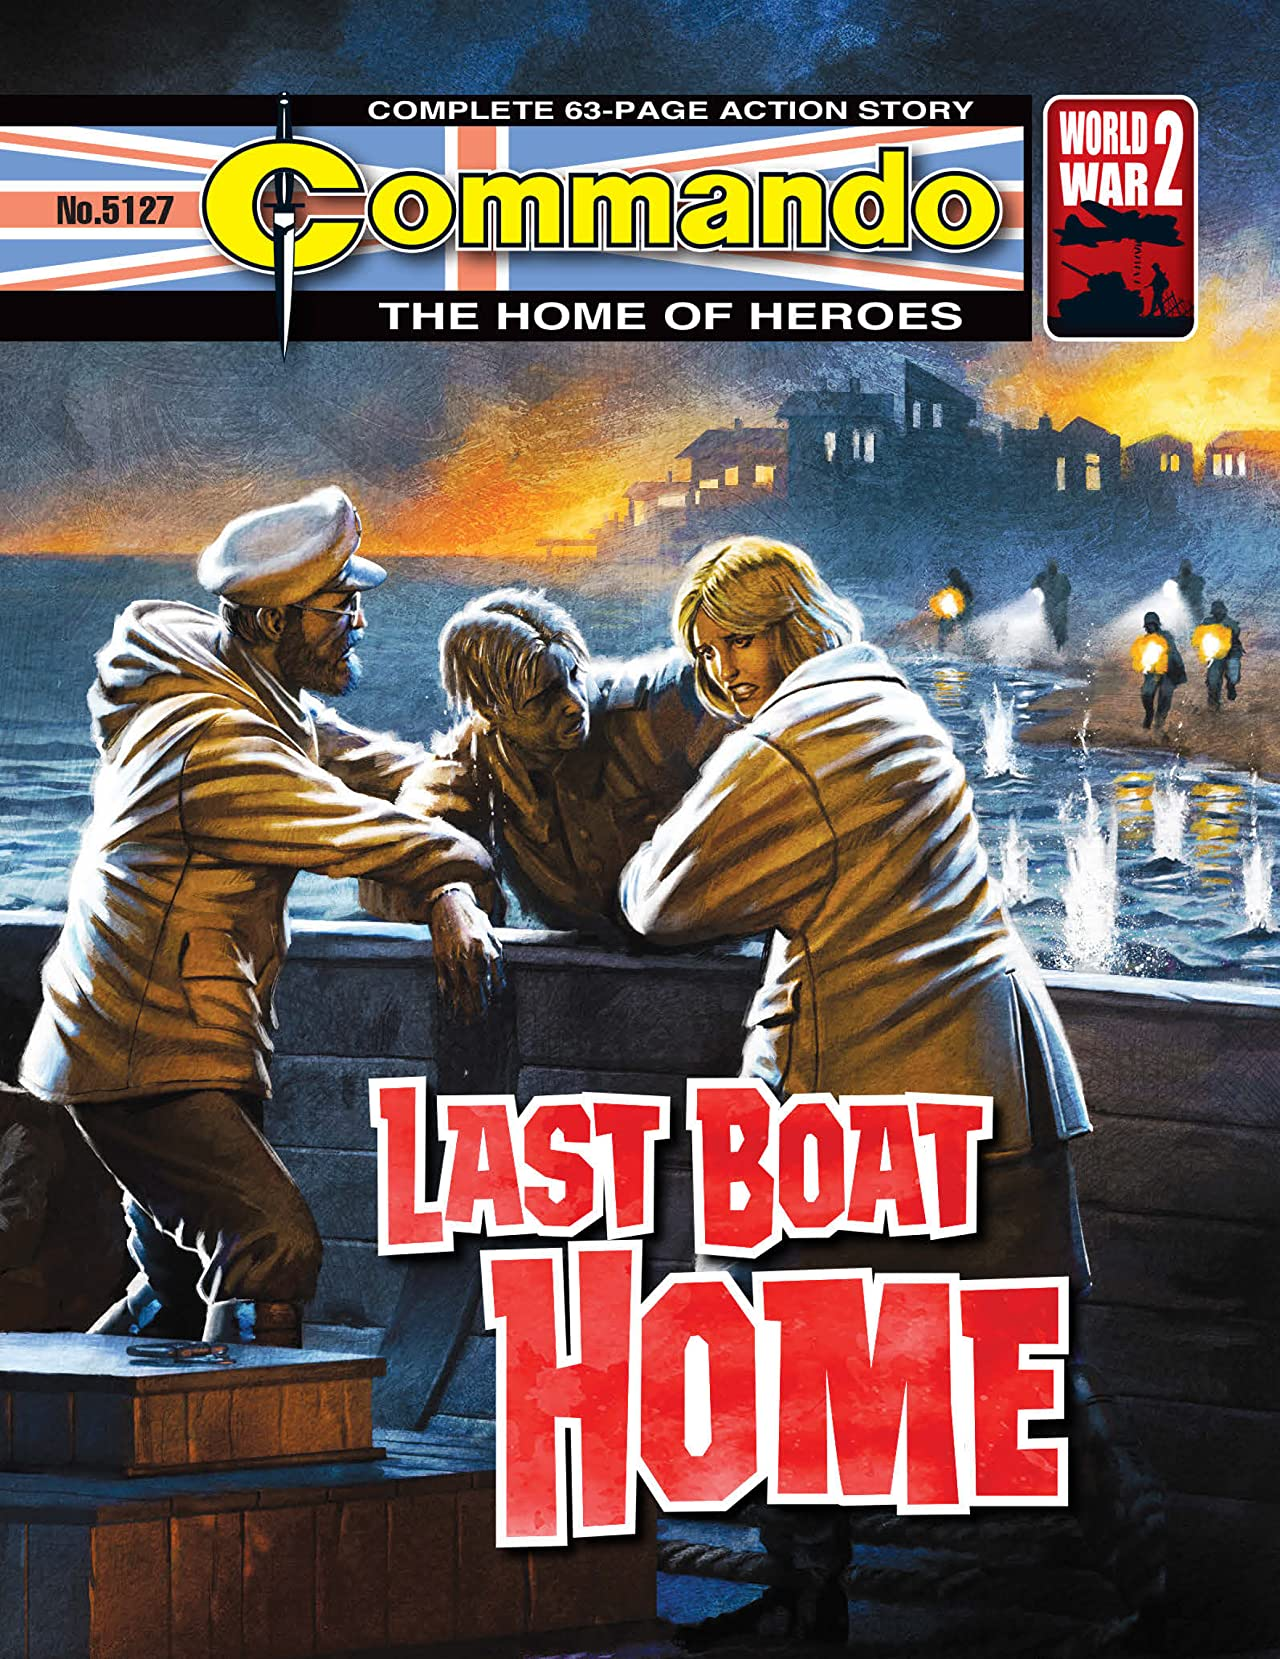 Commando #5127: Last Boat Home